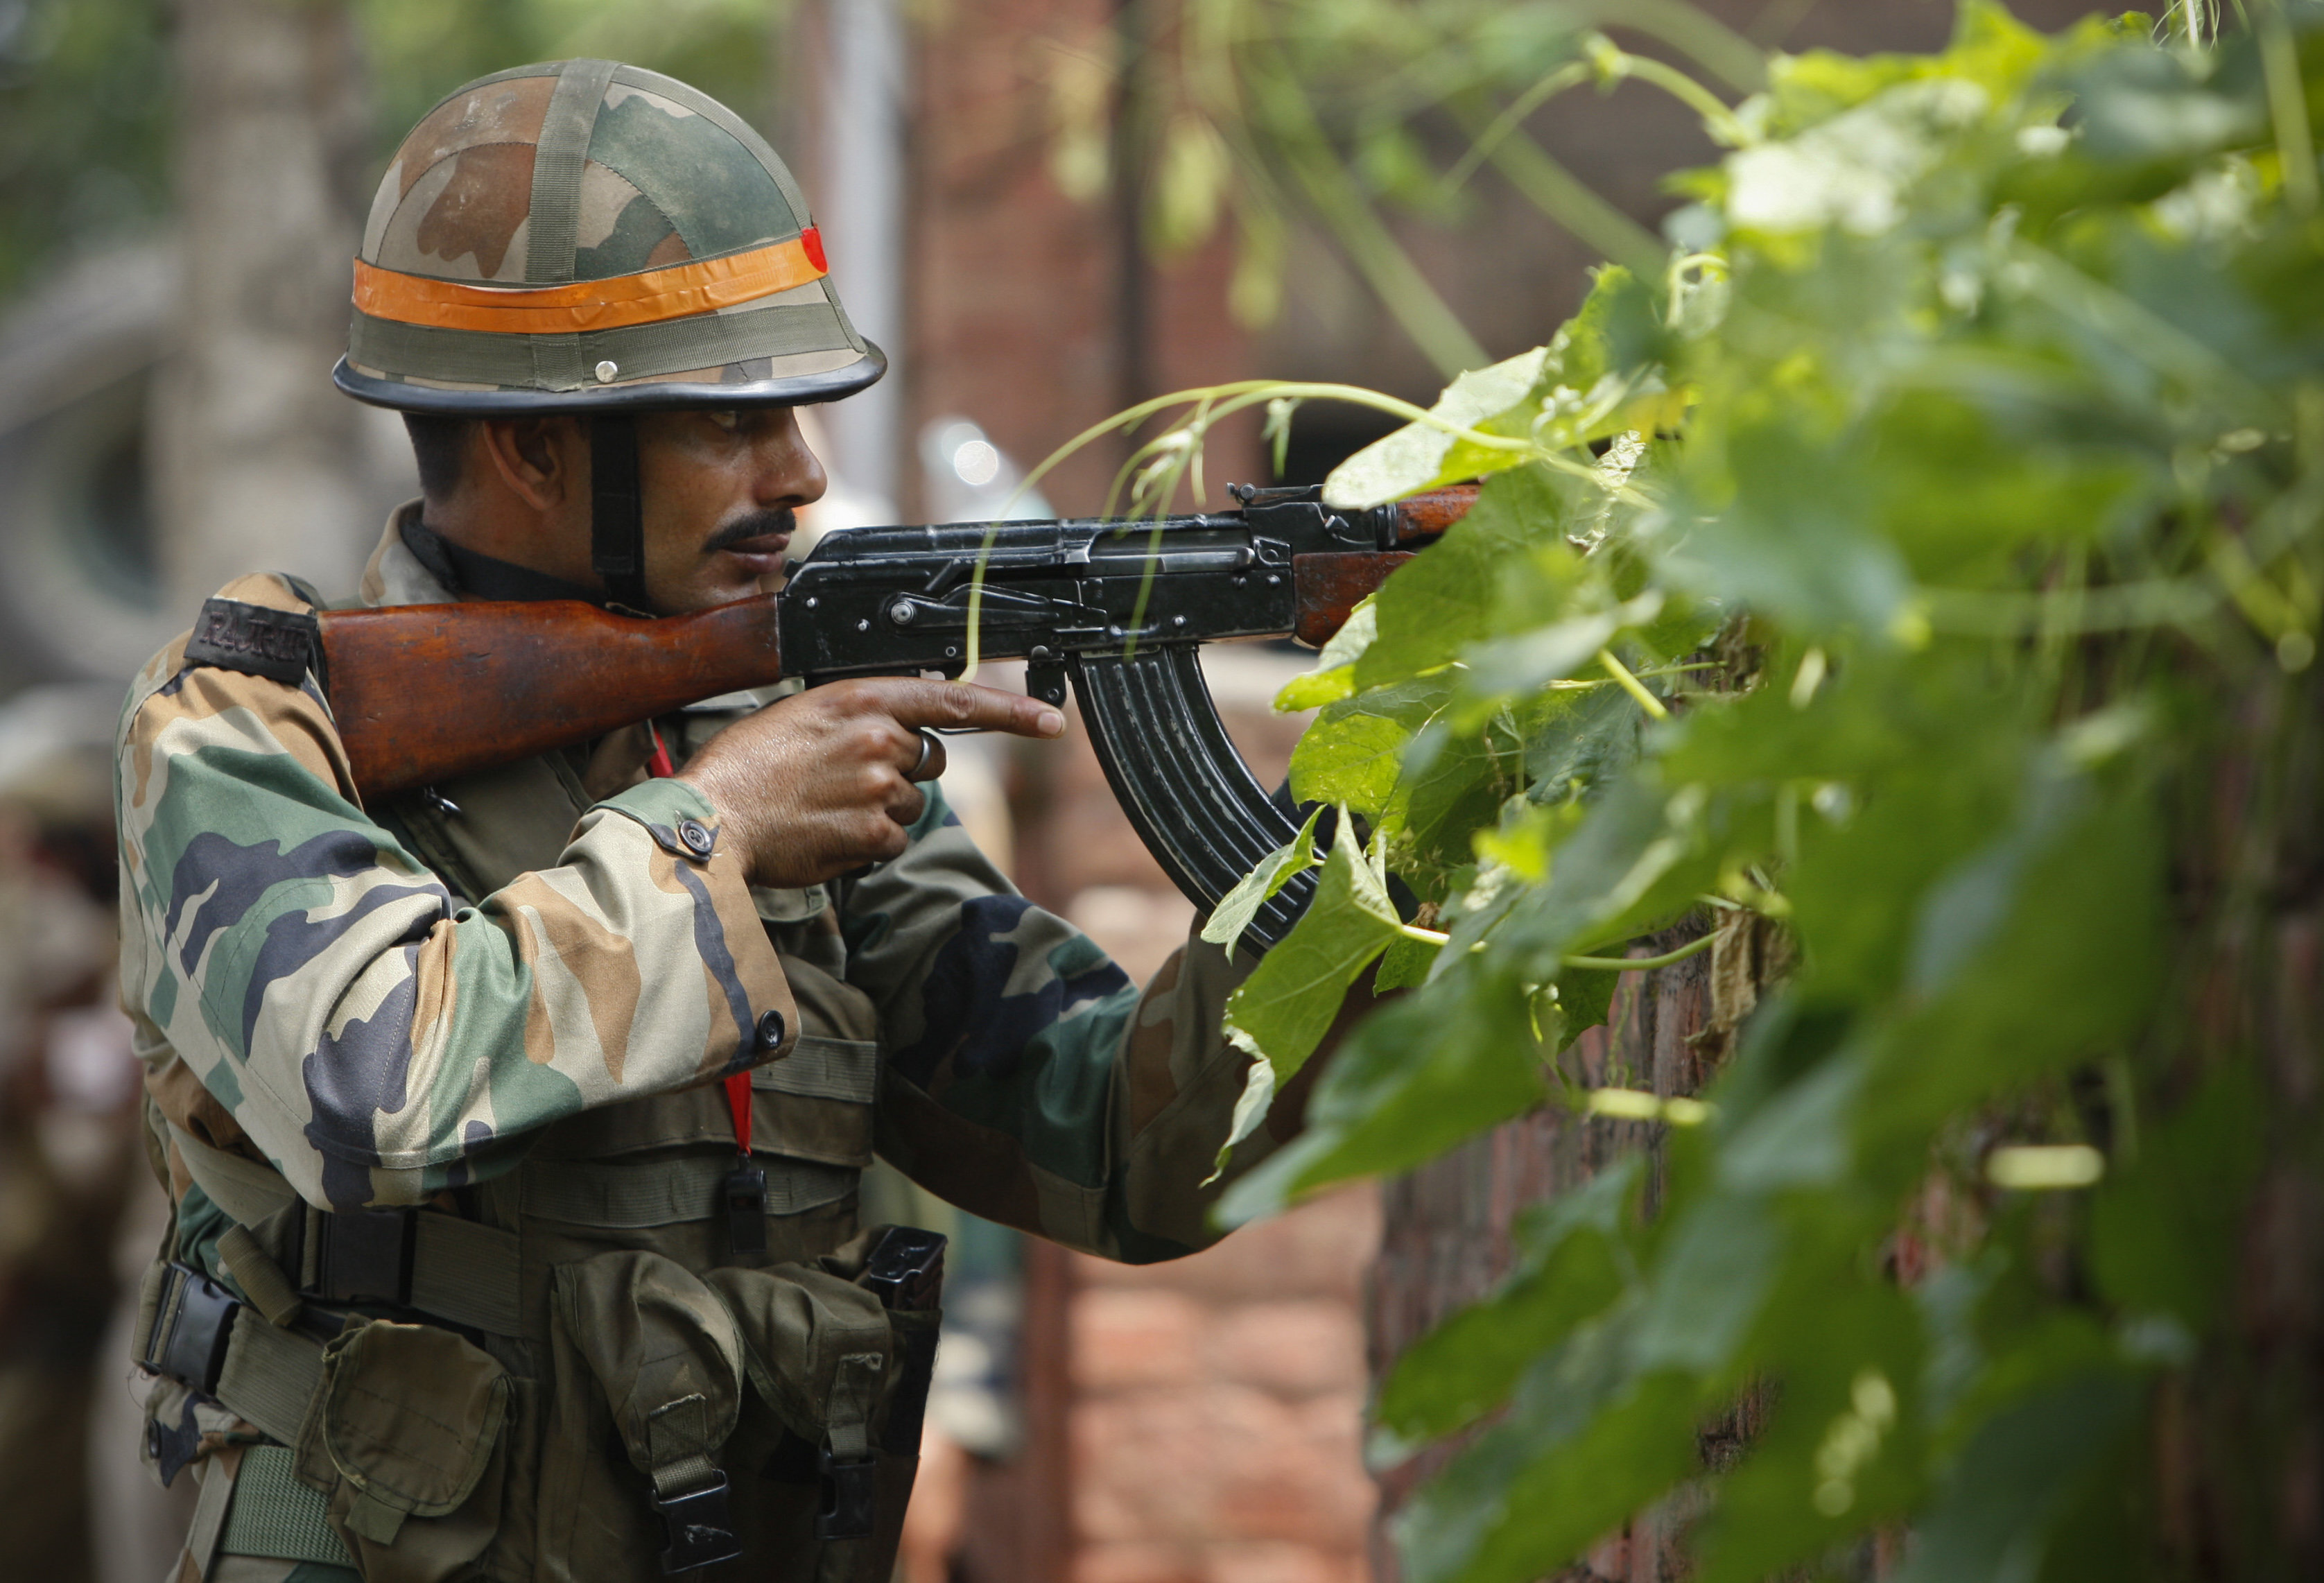 An Indian army soldier holds an AK-47 assault rifle during a fight in the town of Dinanagar, in the northern state of Punjab, India, Monday, July 27, 2015.